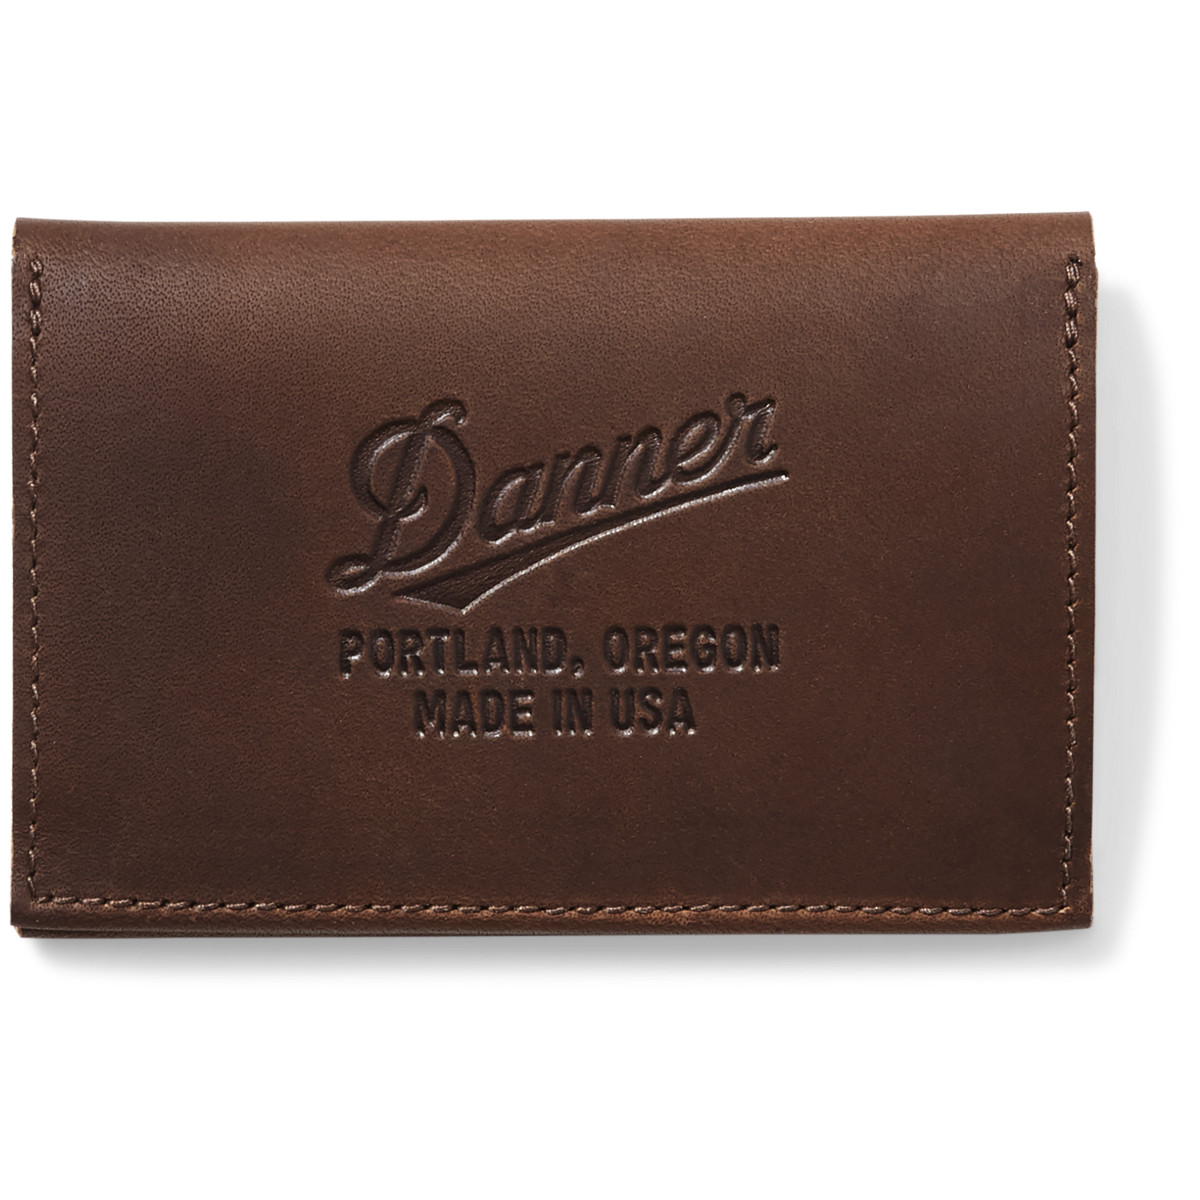 Danner Leather Wallet - Brown